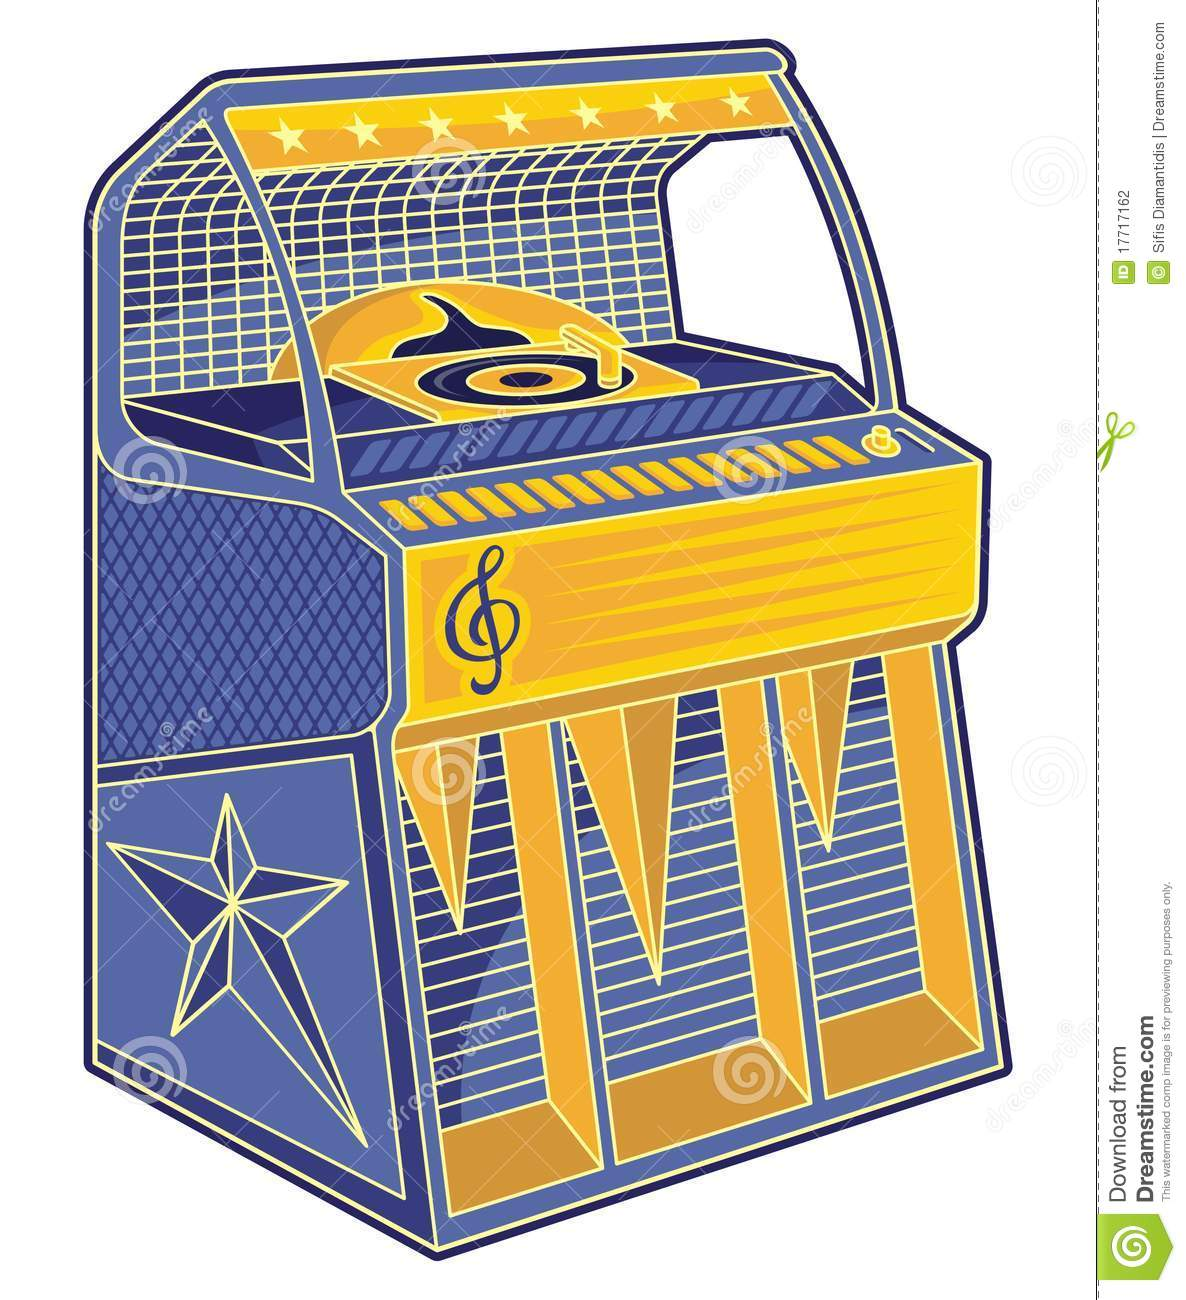 Line Art Jukebox : Retro jukebox lineart stock photography image